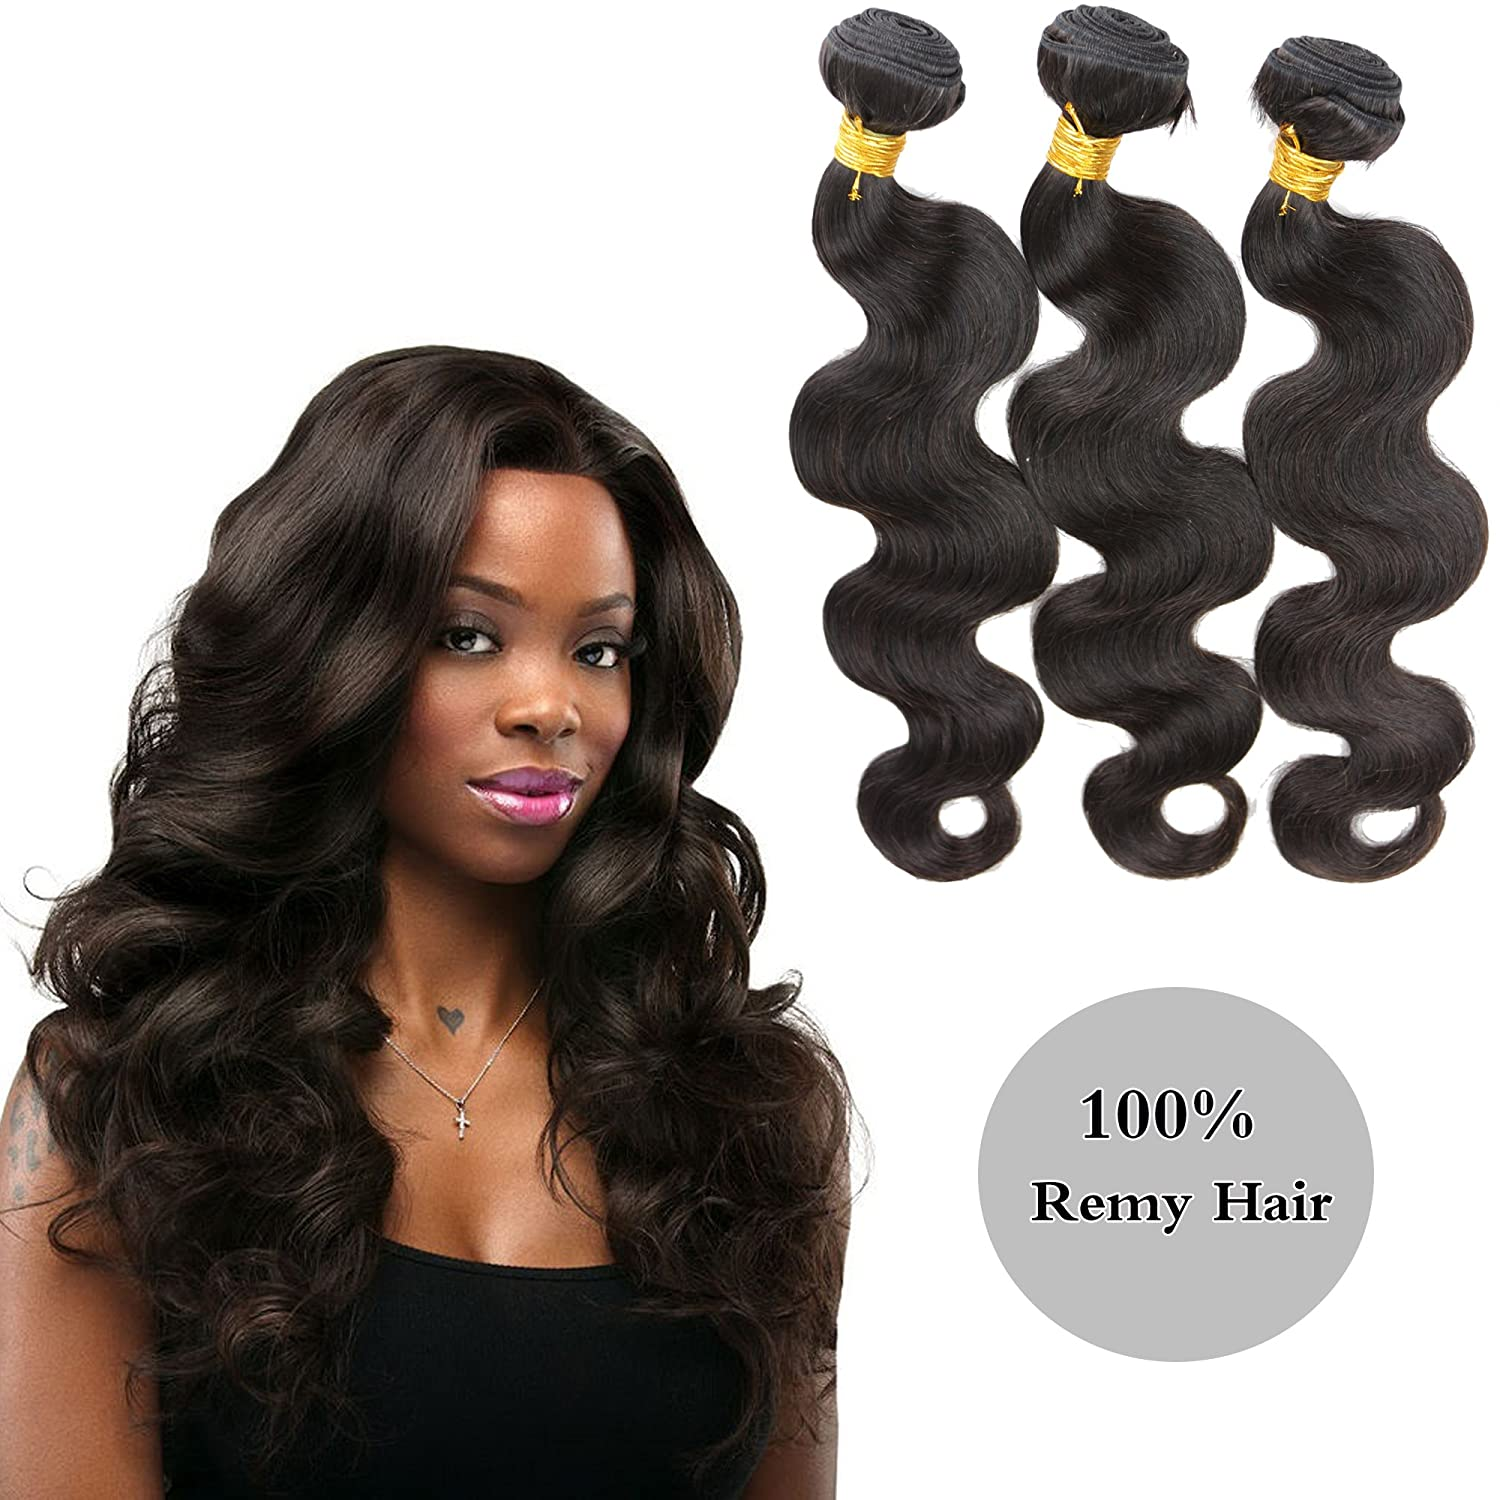 Best Human Hair Weave Unprocessed Brazilian Hair Extensions For Thin